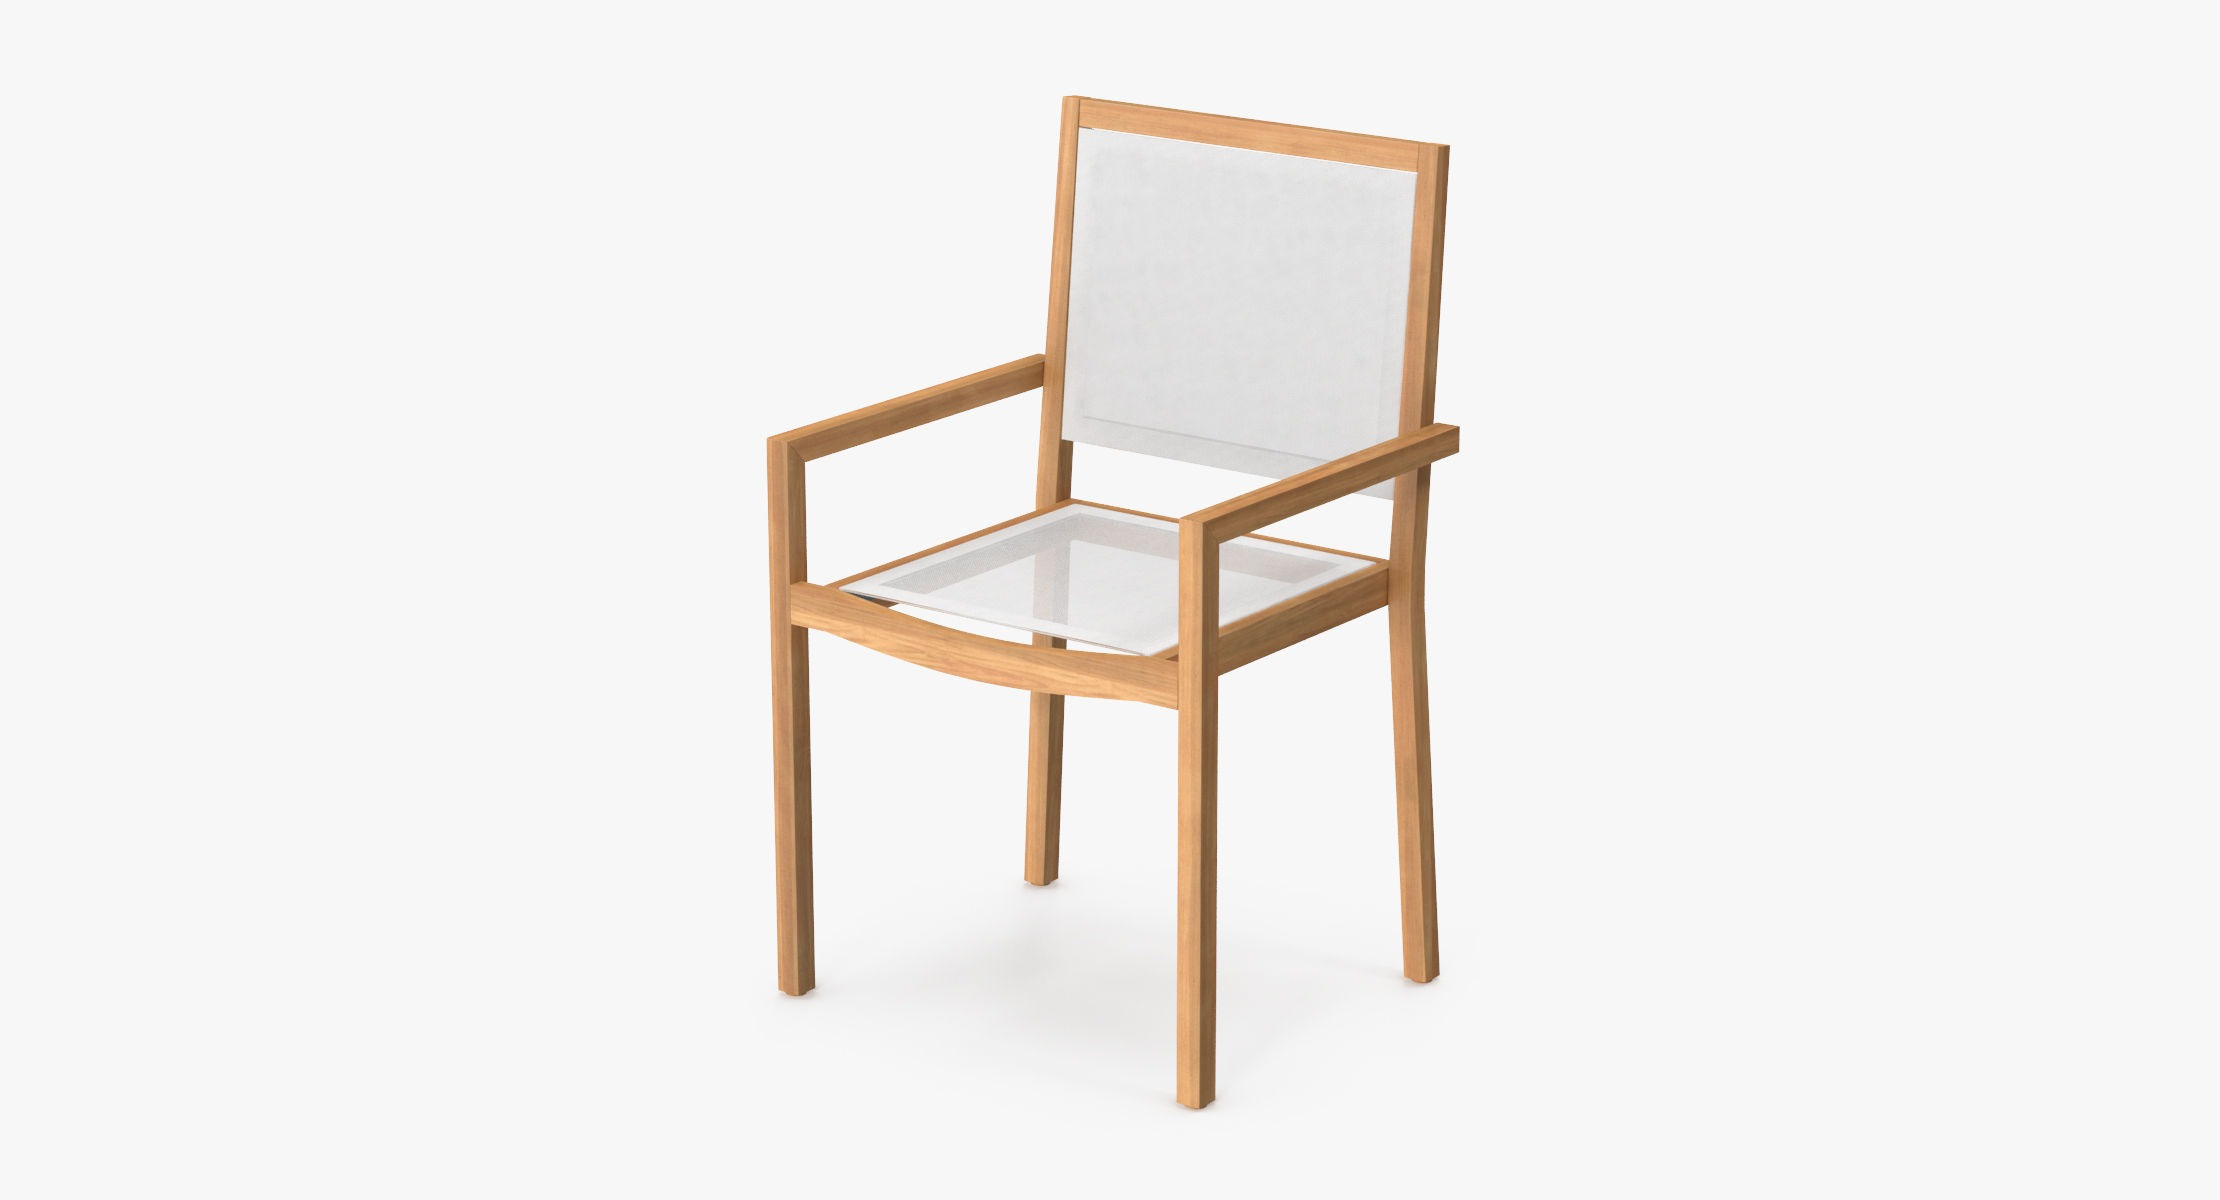 Patio Dinning Chair 01 - reel 1